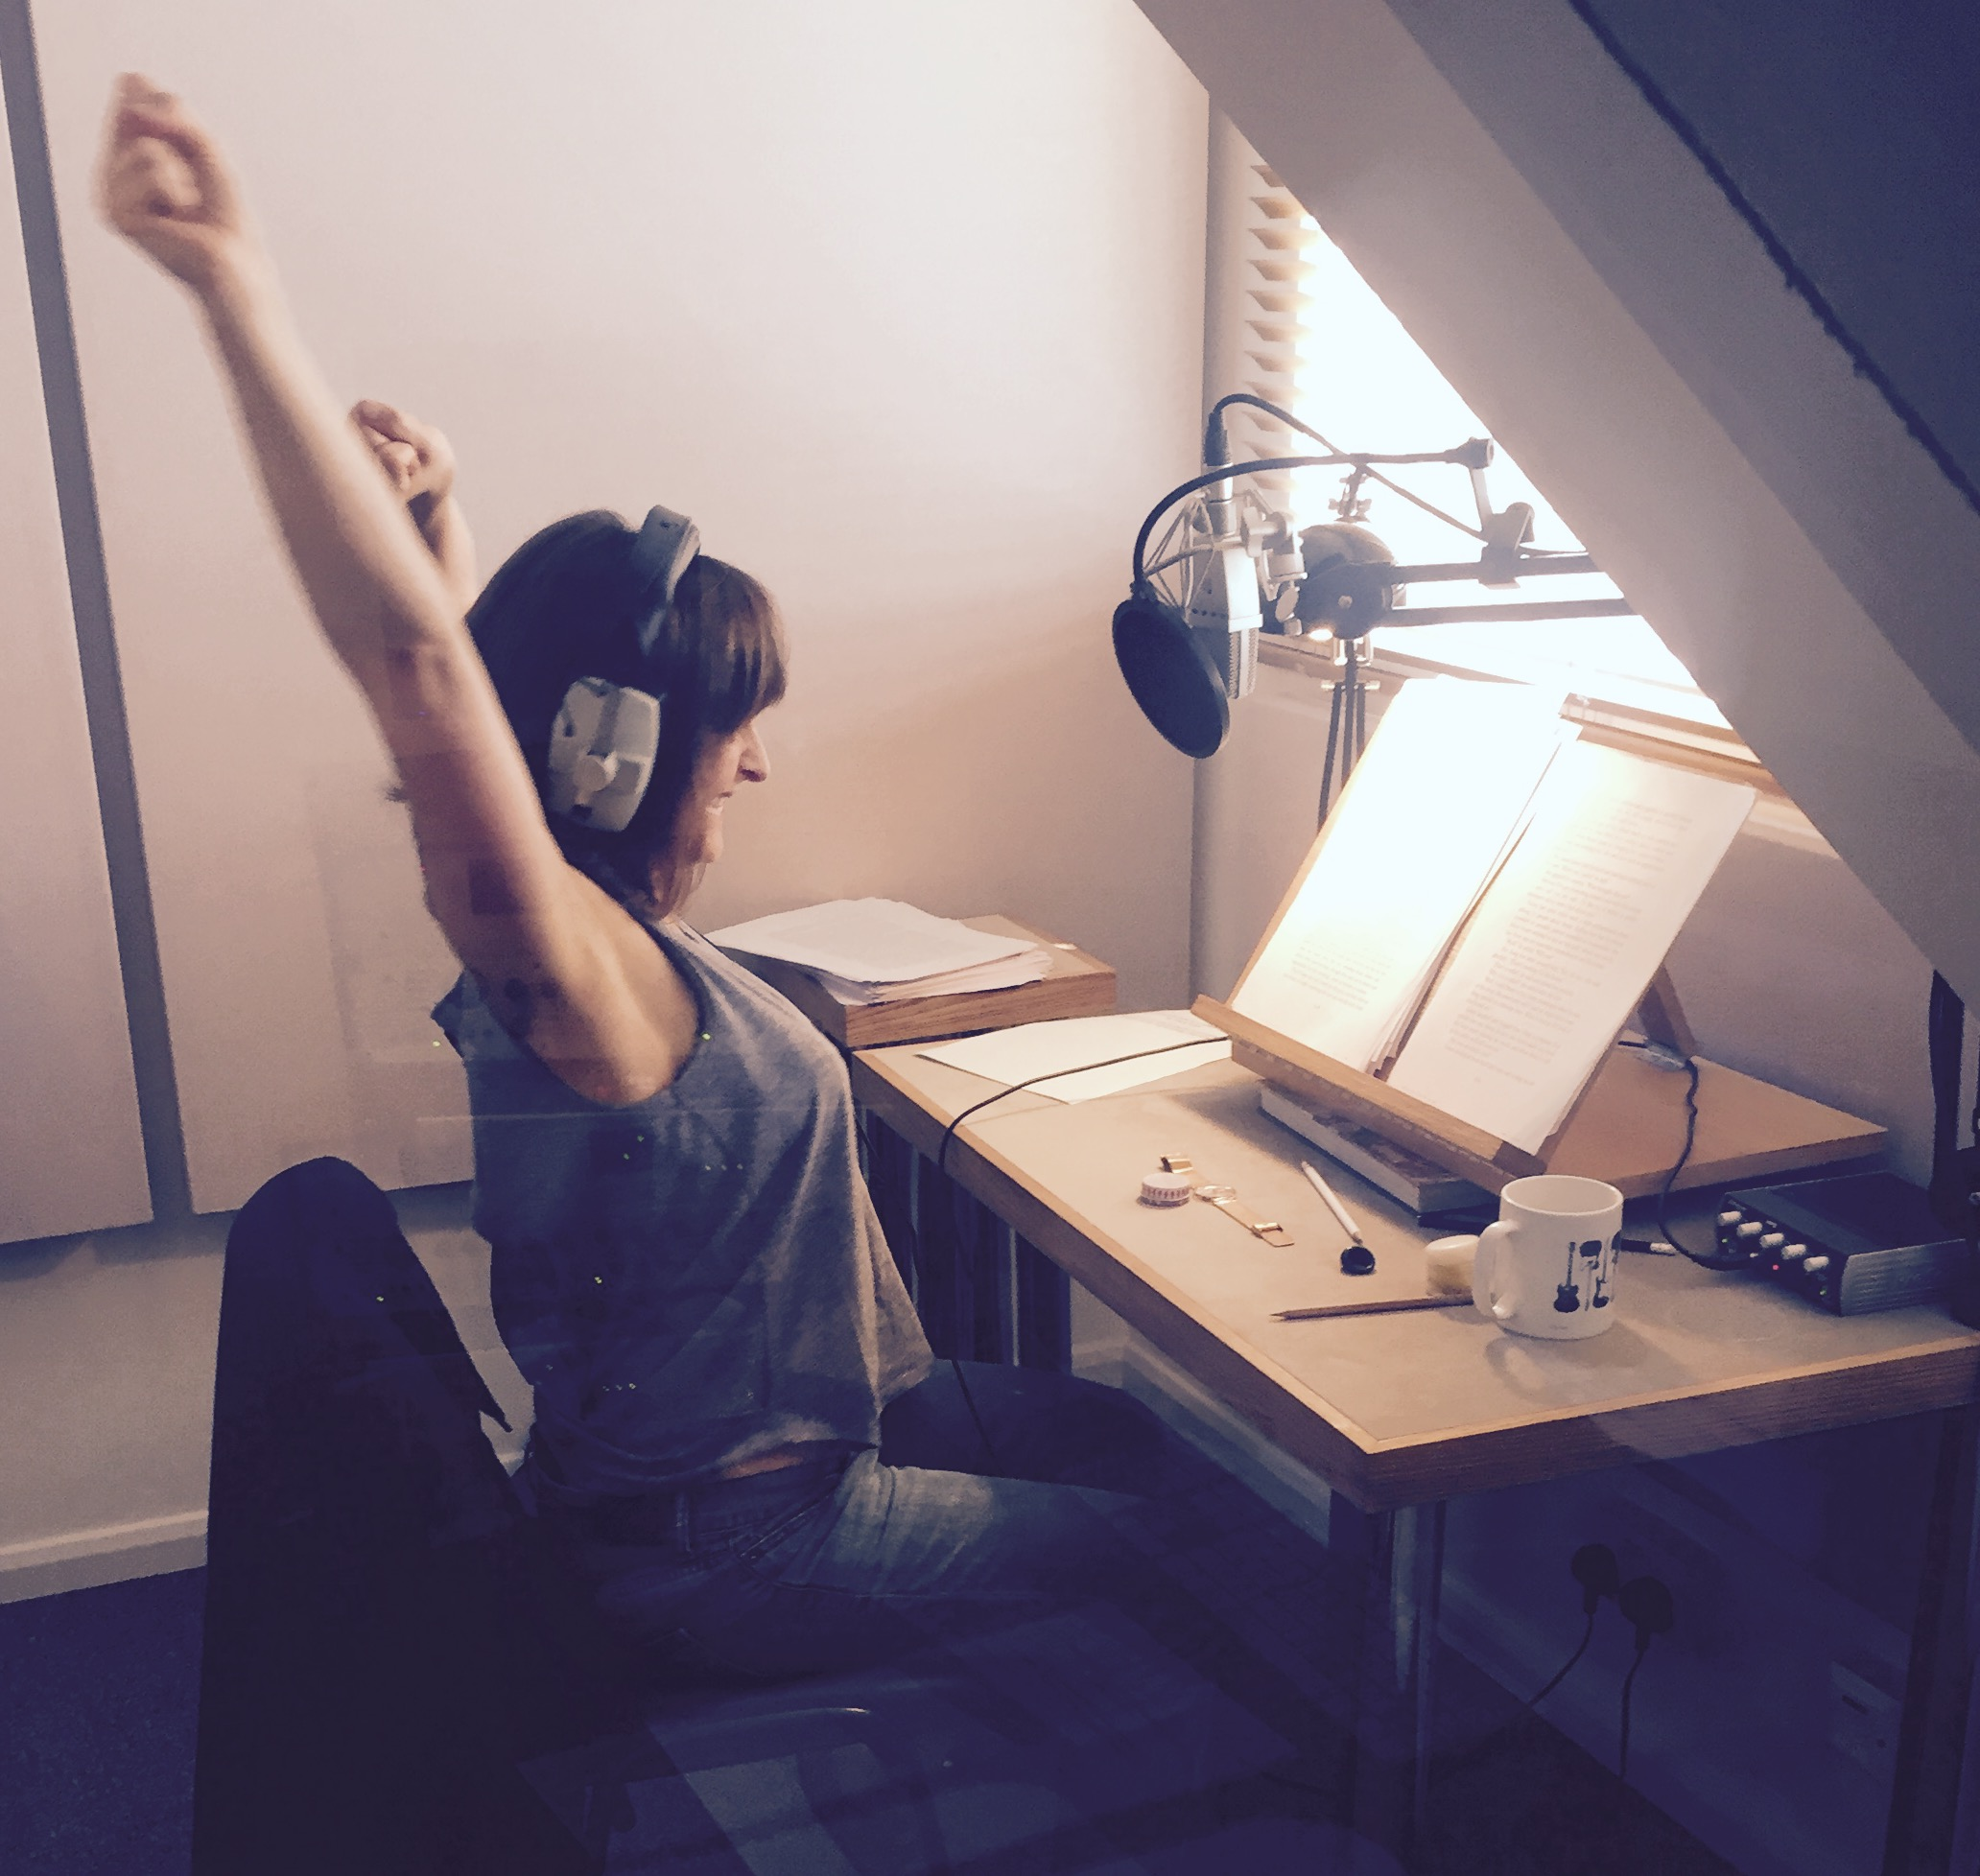 September - final day recording FAITH by Lesley Pearse for Penguin Books. Only 610 pages and 33 hours of recording.